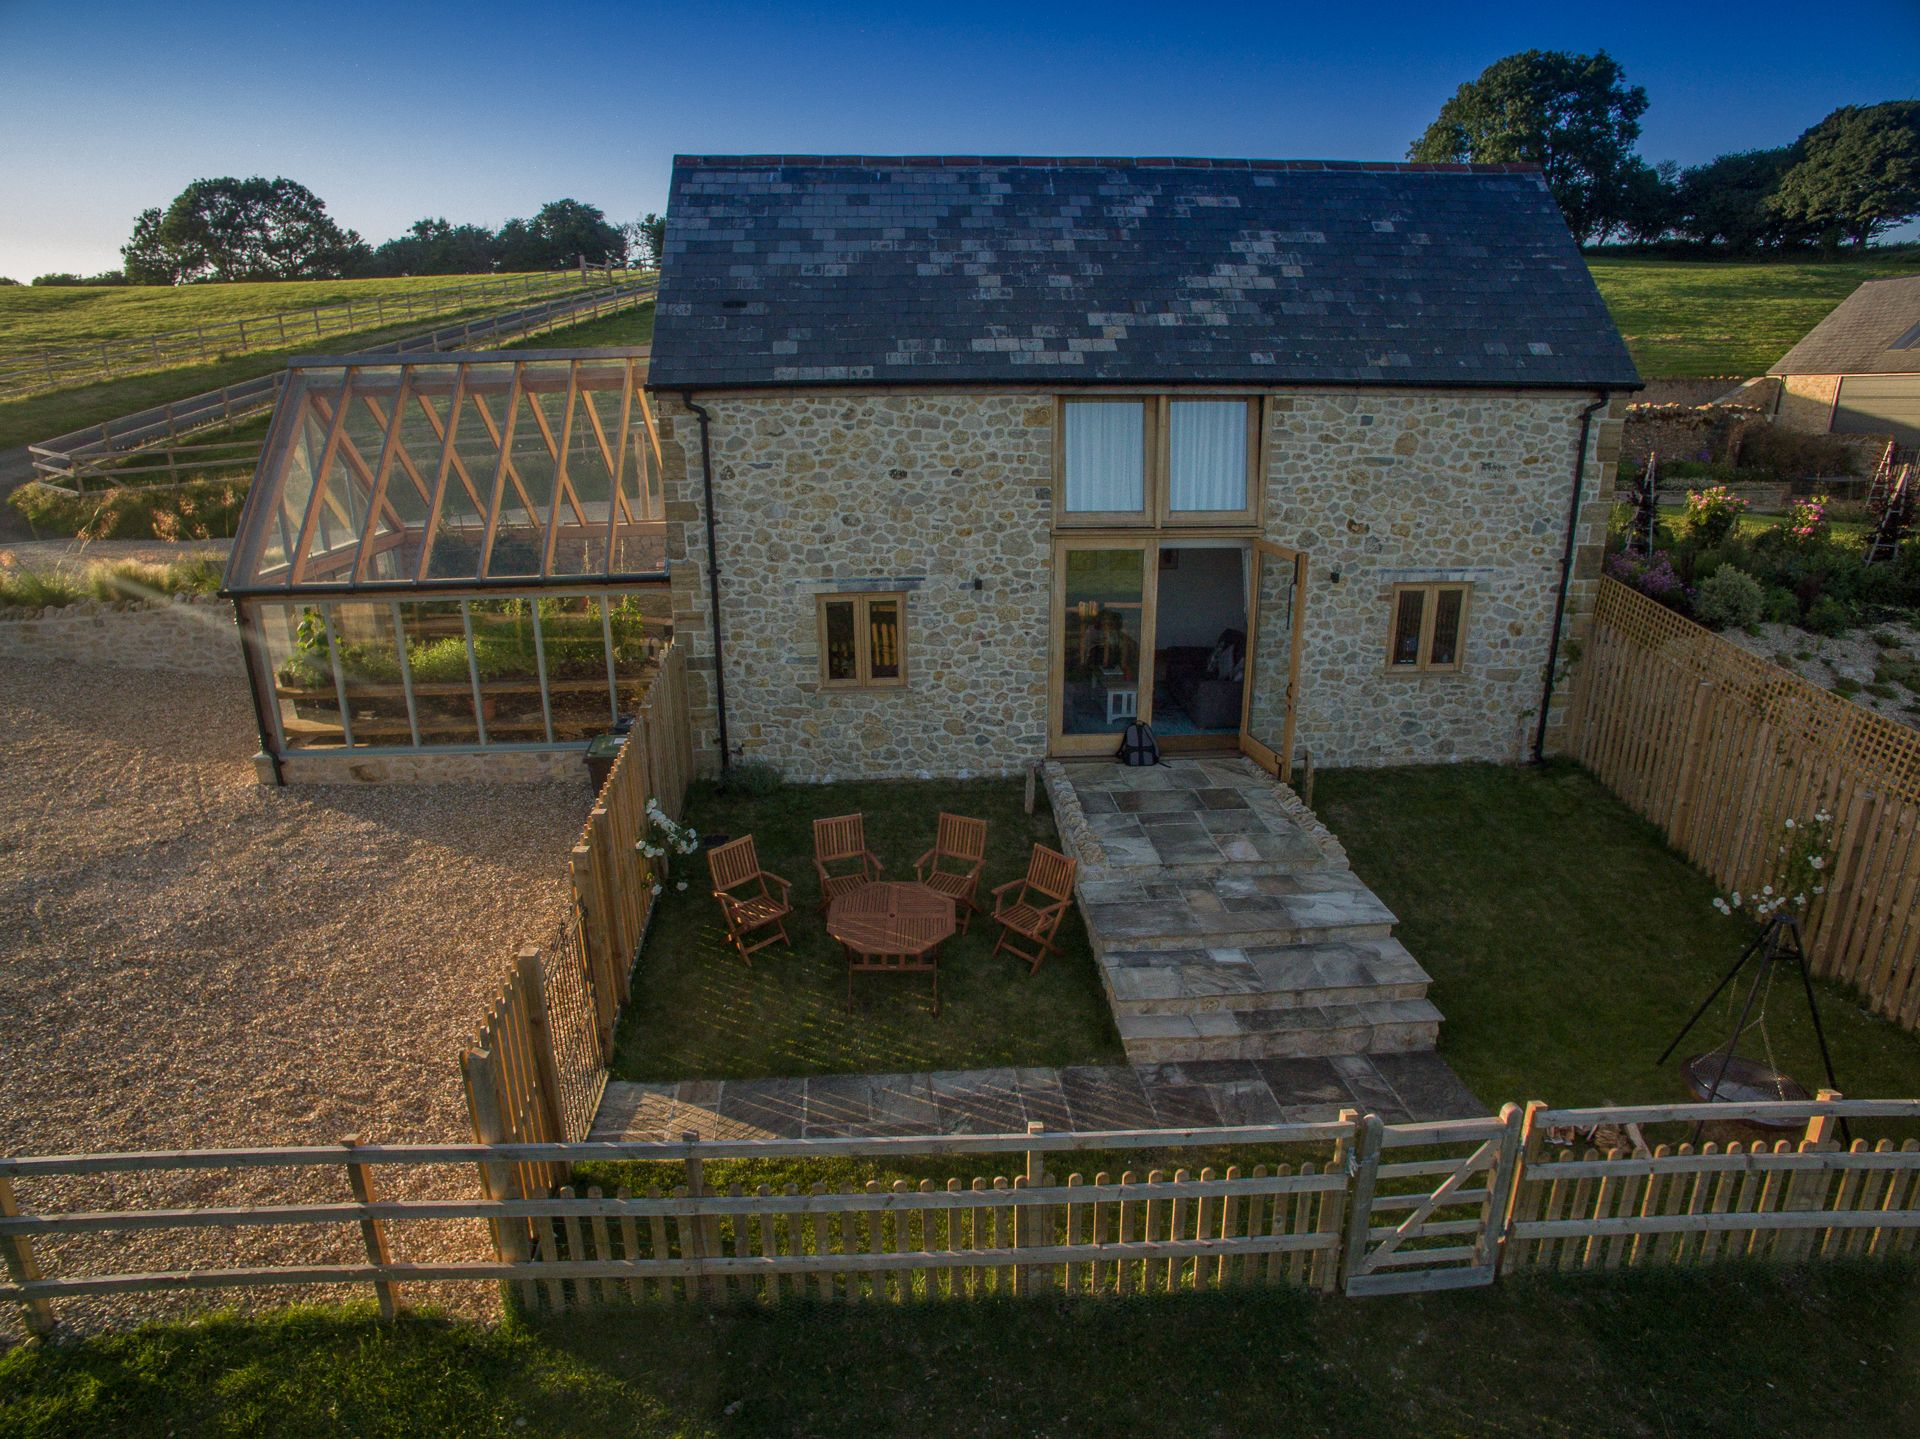 Small enclosed south facing garden with a gate leading out onto the open countryside